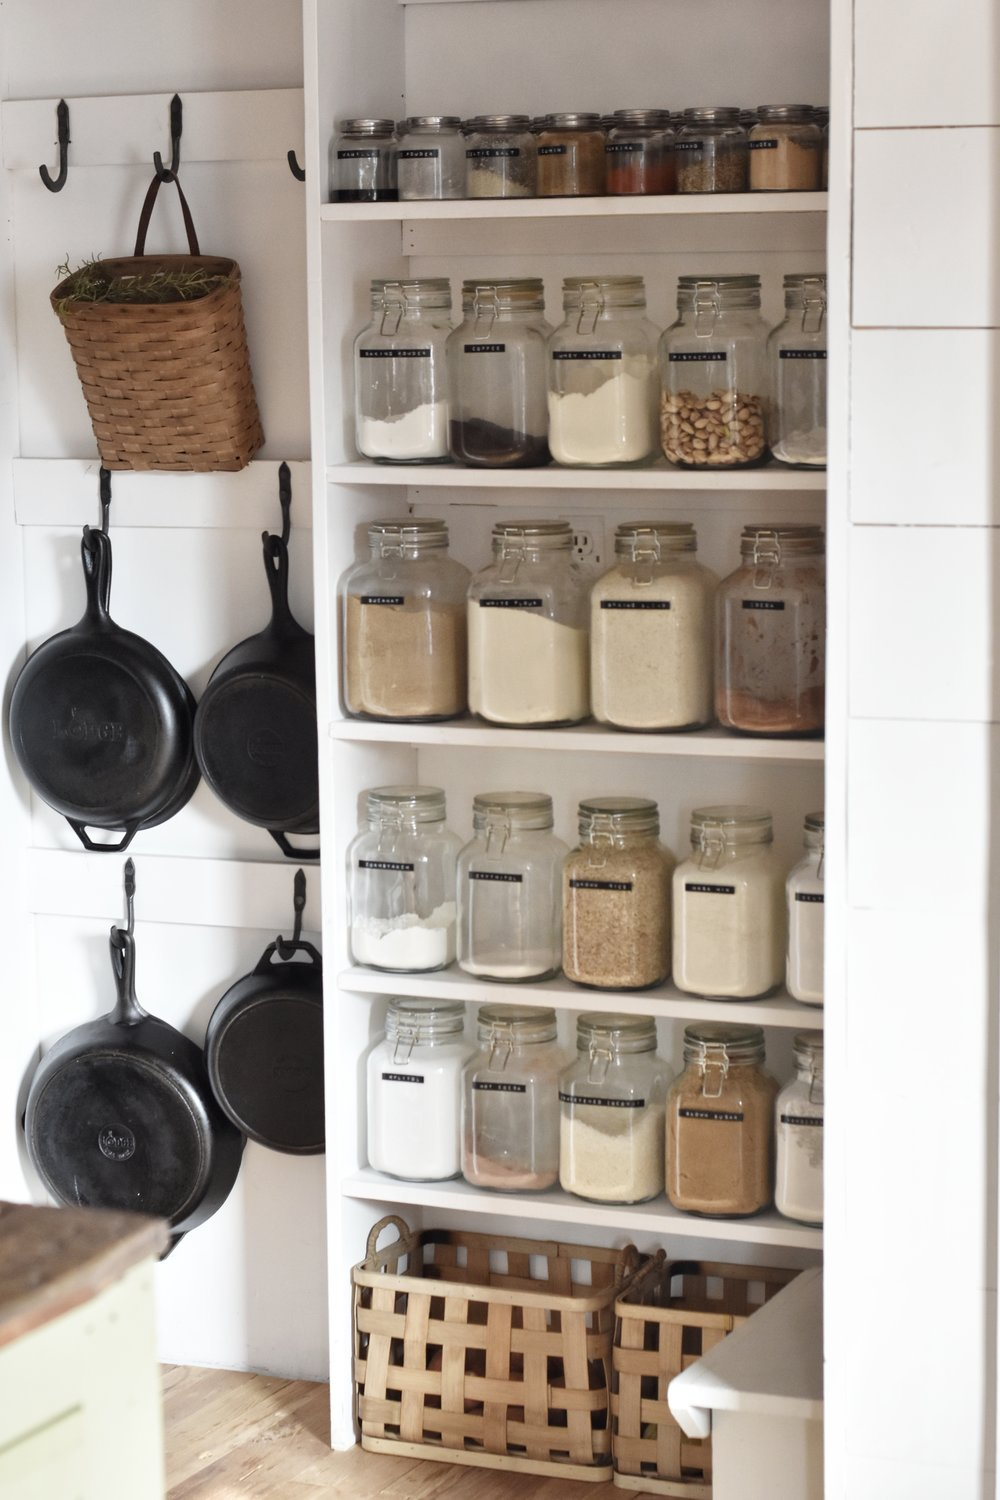 Pantry essentials for cook from scratch healthy meals. A well organized pantry filled with jars that holds spices and herbs to easily see what you need | Rocky Hedge Farm